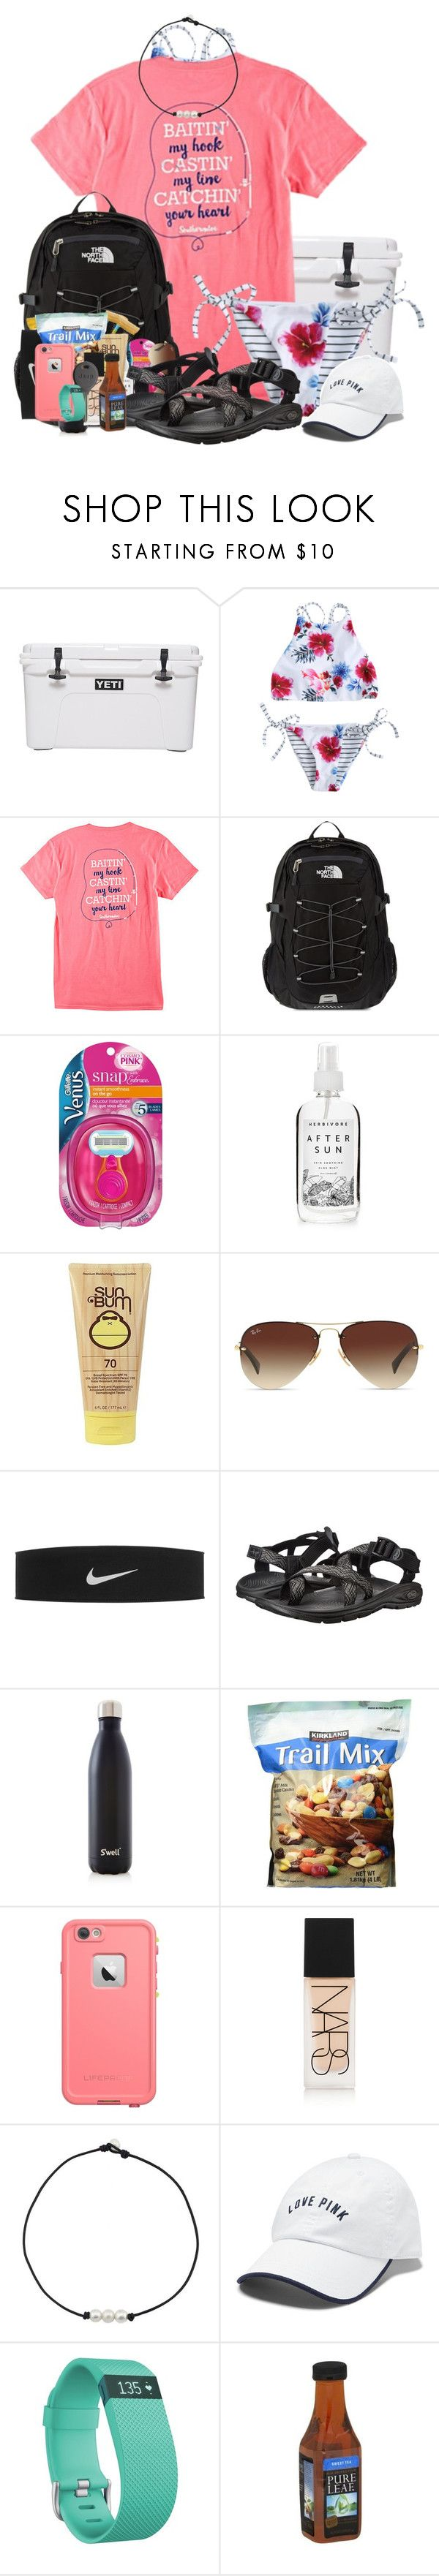 """Day at the lake!"" by rachelxchaney ❤ liked on Polyvore featuring The North Face, Gillette, Herbivore, Sun Bum, Ray-Ban, NIKE, Chaco, S'well, LifeProof and NARS Cosmetics"